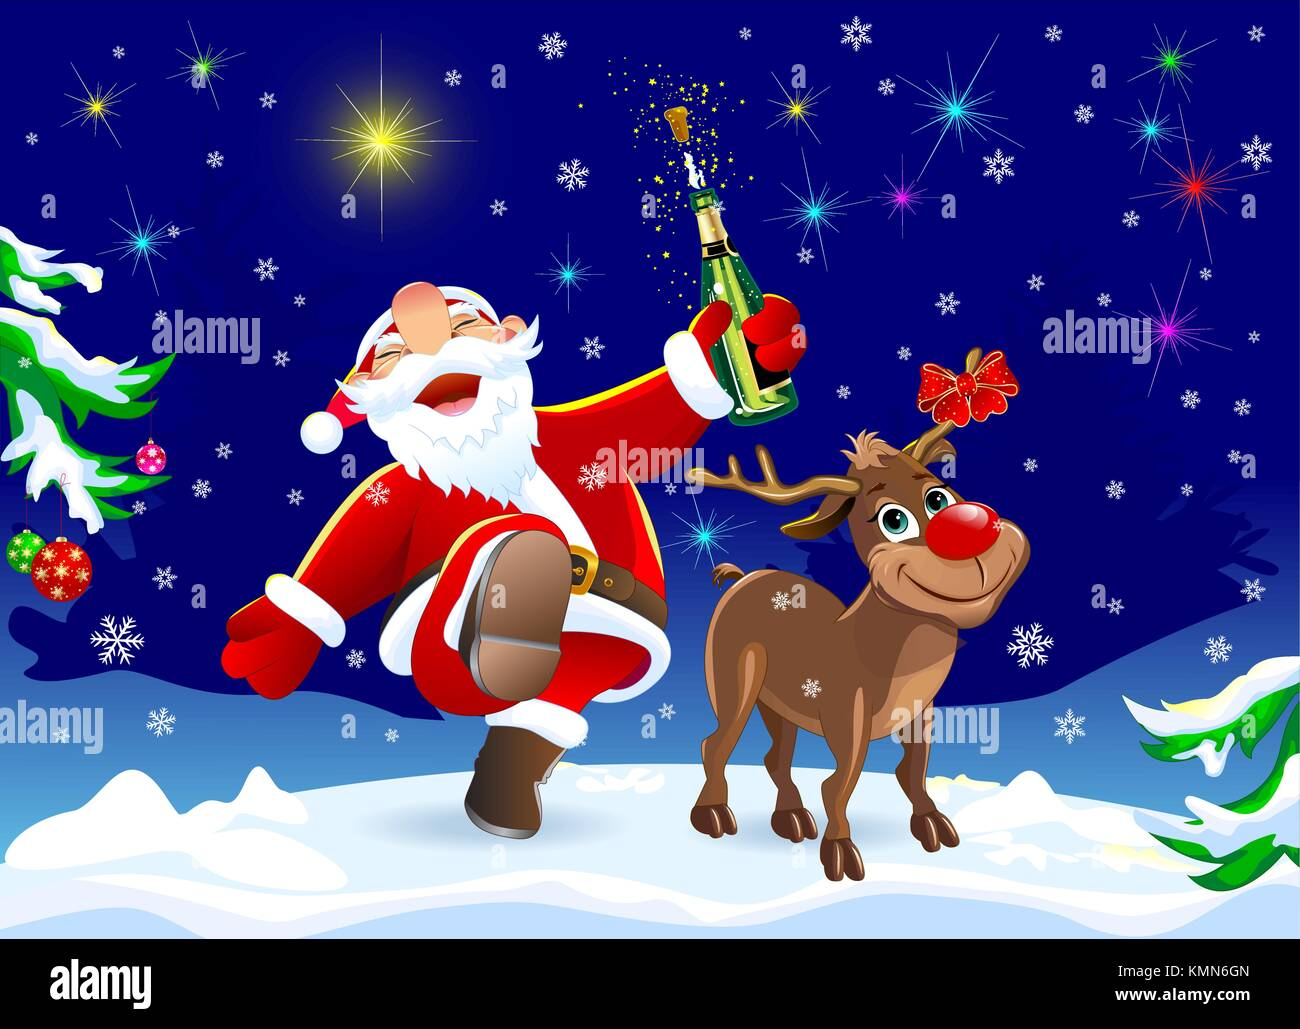 Merry Christmas Eve Images.On The Eve Of Christmas Santa Claus And Deer In The Winter